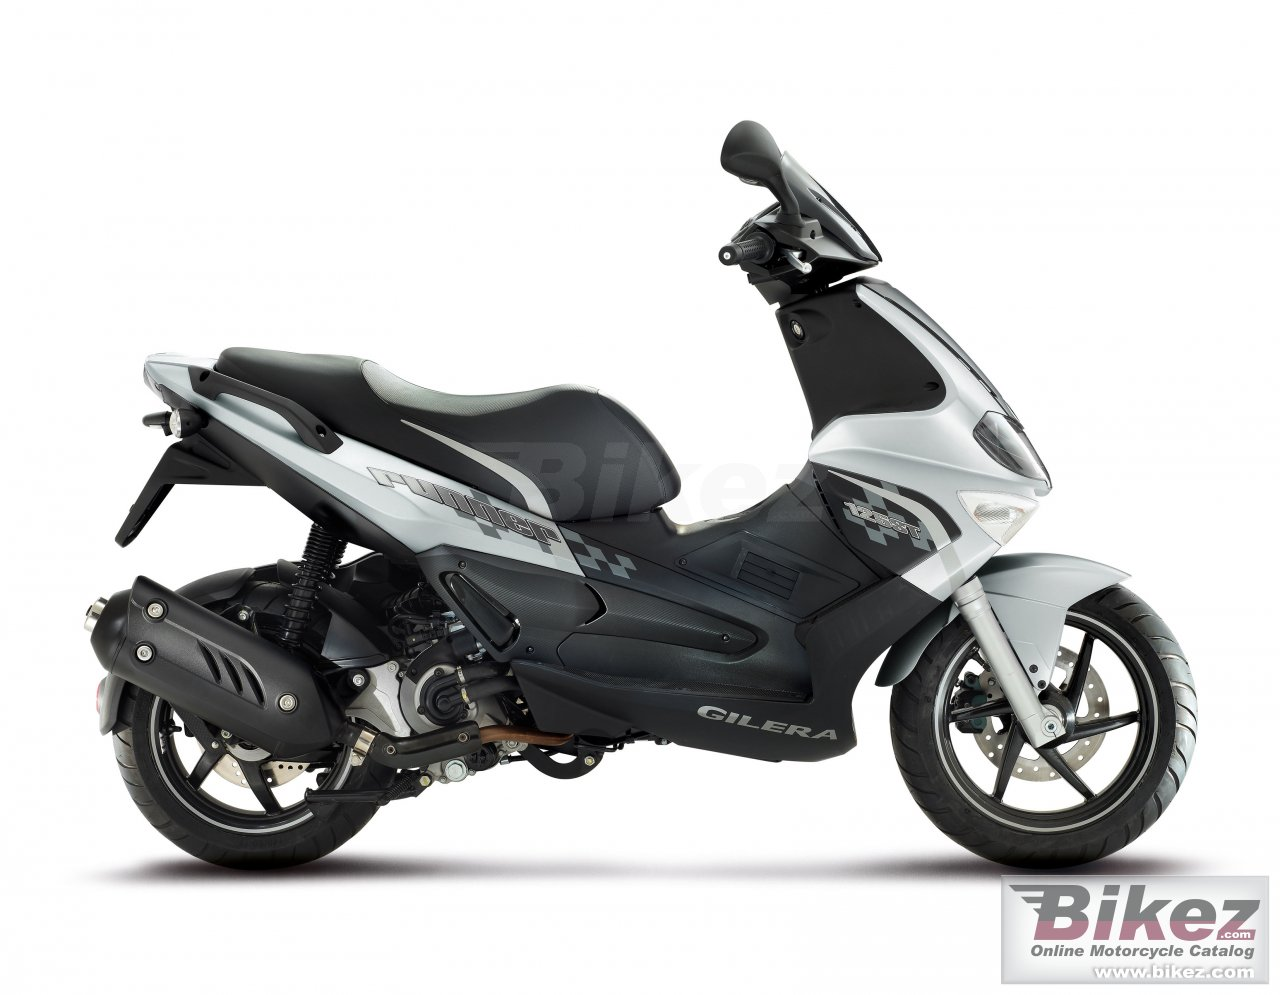 Gilera Runner 125 Black Soul 2015 images #74476